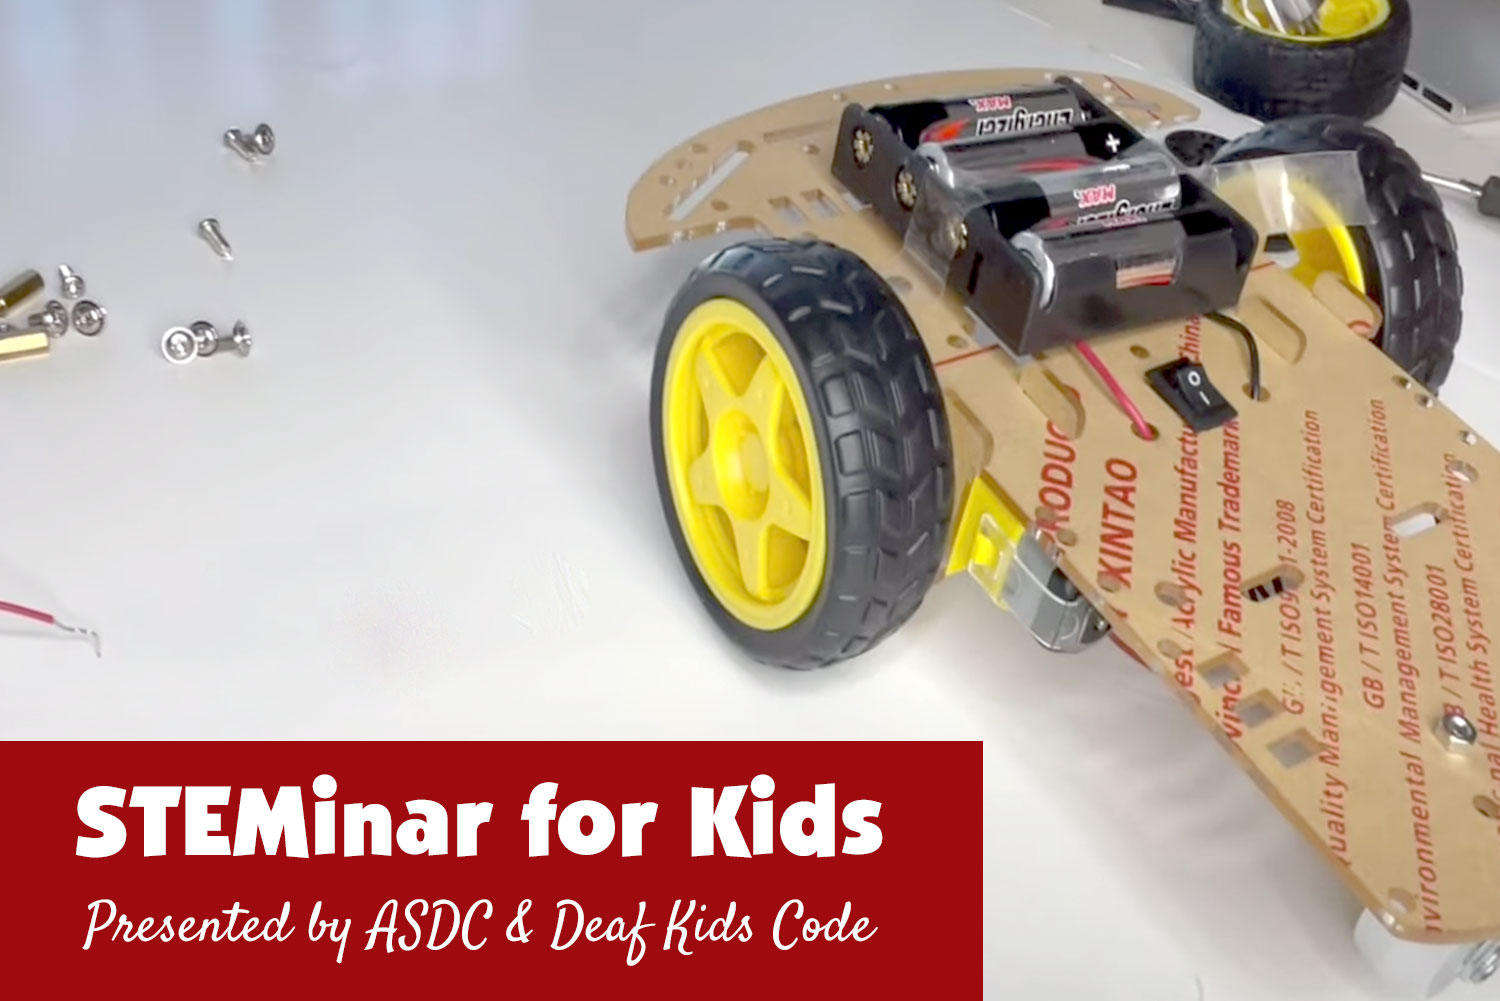 image shows a motorized car project for kids